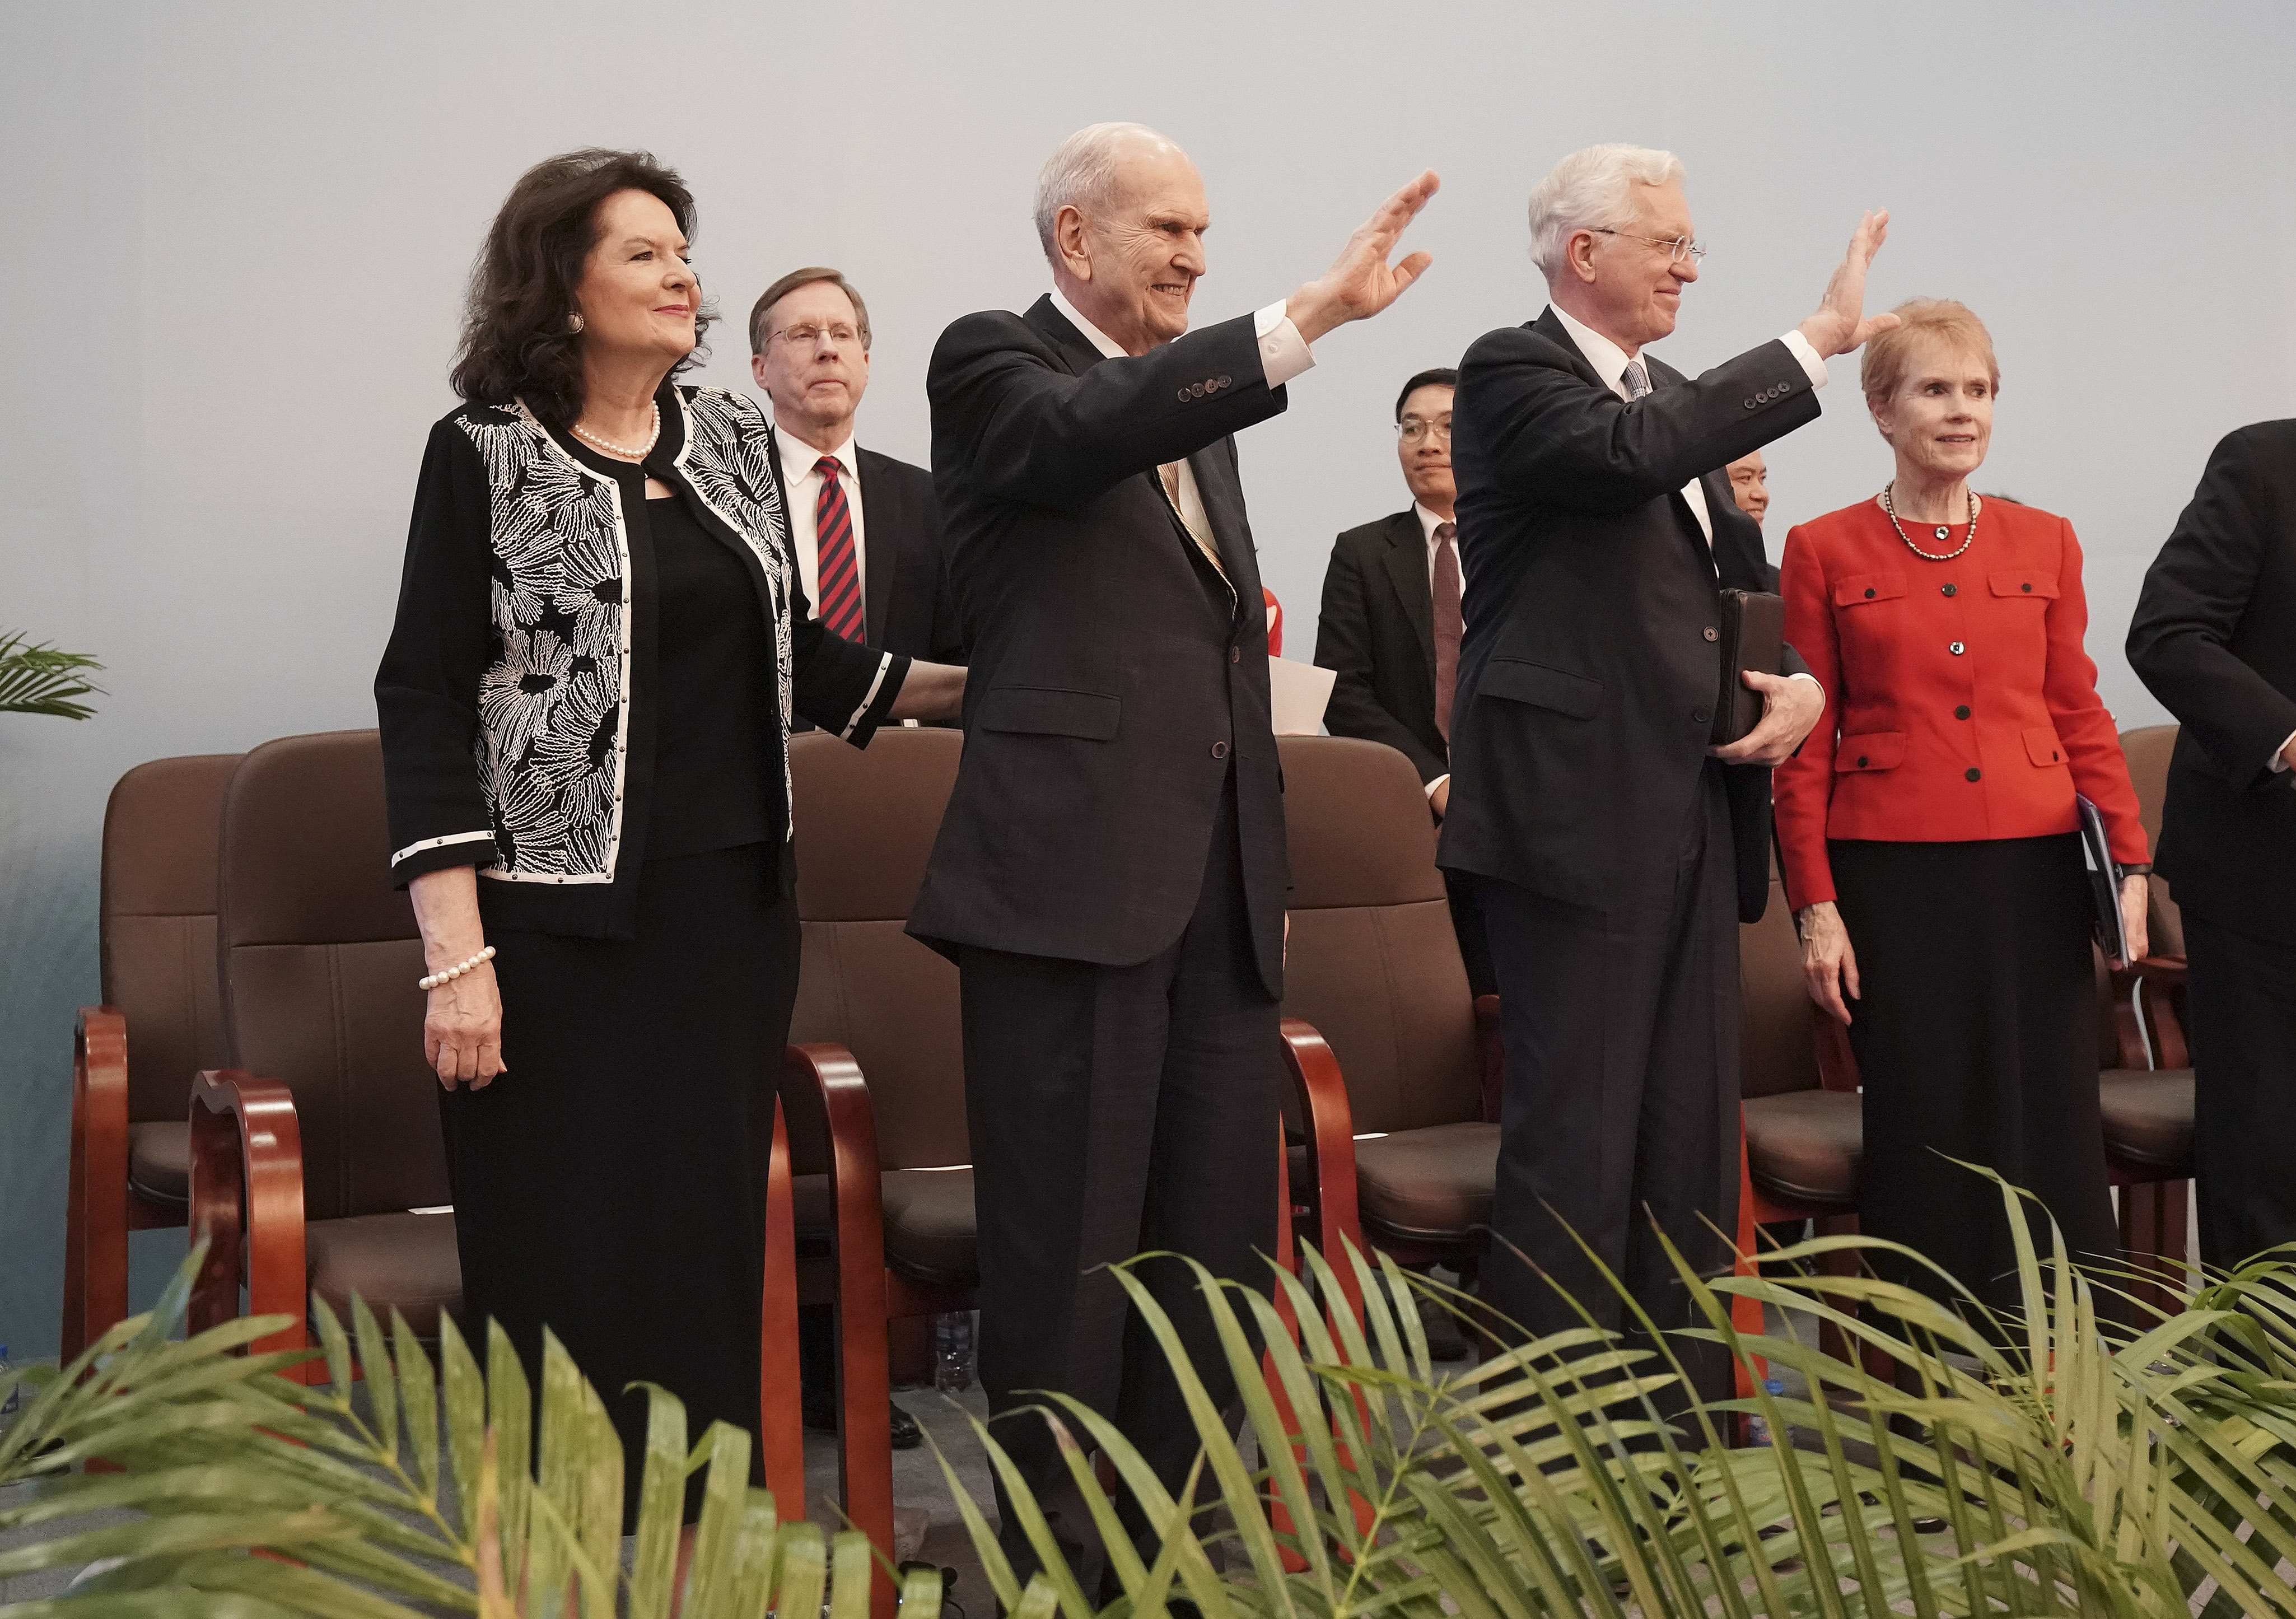 President Russell M. Nelson of The Church of Jesus Christ of Latter-day Saints and his wife, Sister Wendy Nelson, and Elder D. Todd Christofferson of the Twelve Apostles and his wife, Sister Kathy Christofferson, wave after a devotional in Ho Chi Minh City, Vietnam, on Nov. 18, 2019.